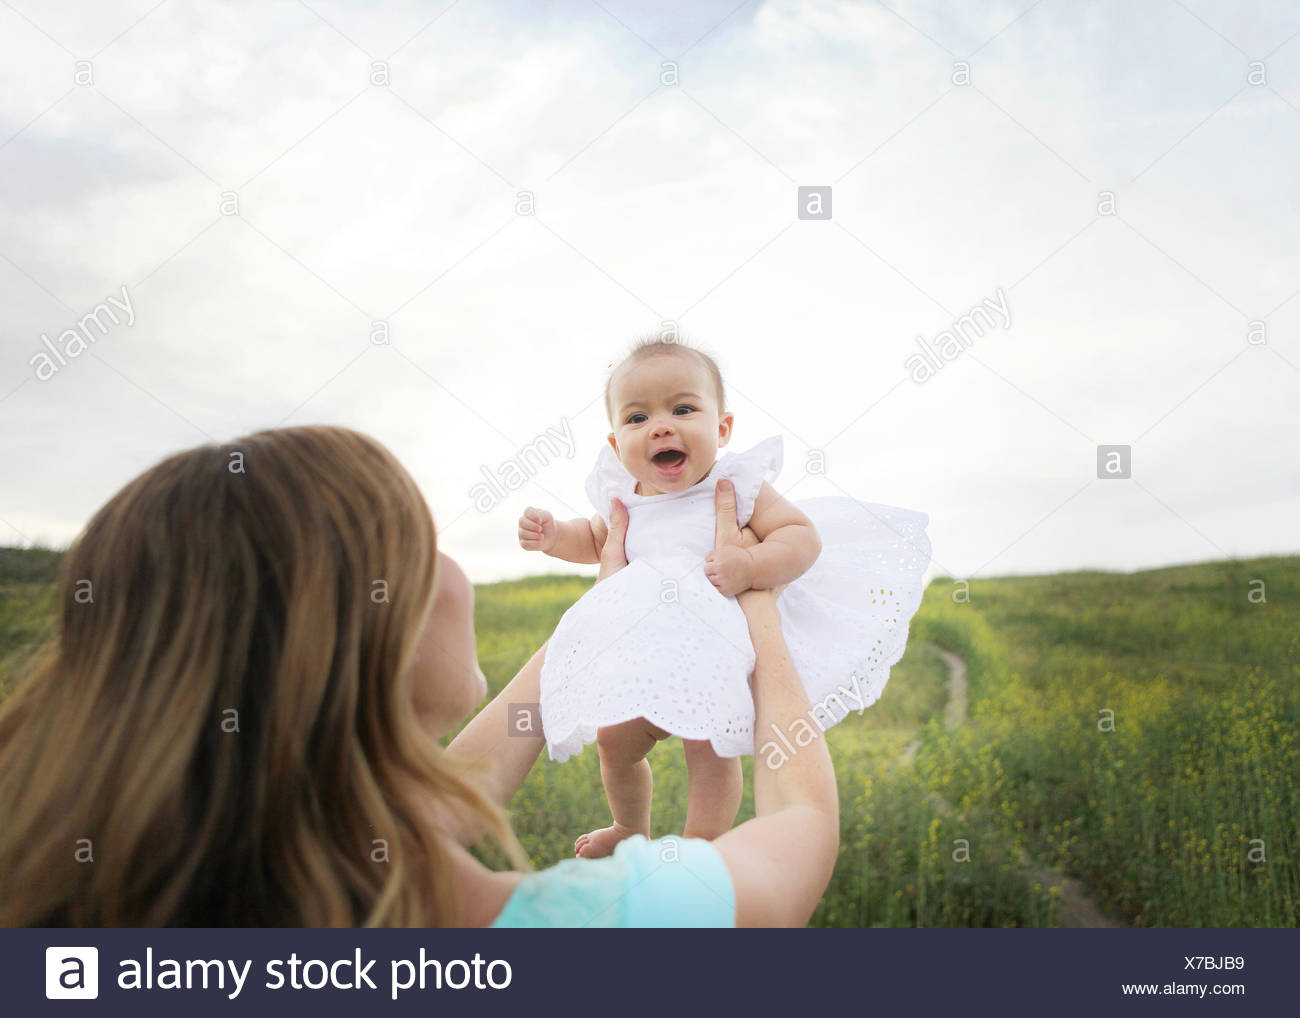 Mother lifting baby girl in the air - Stock Image